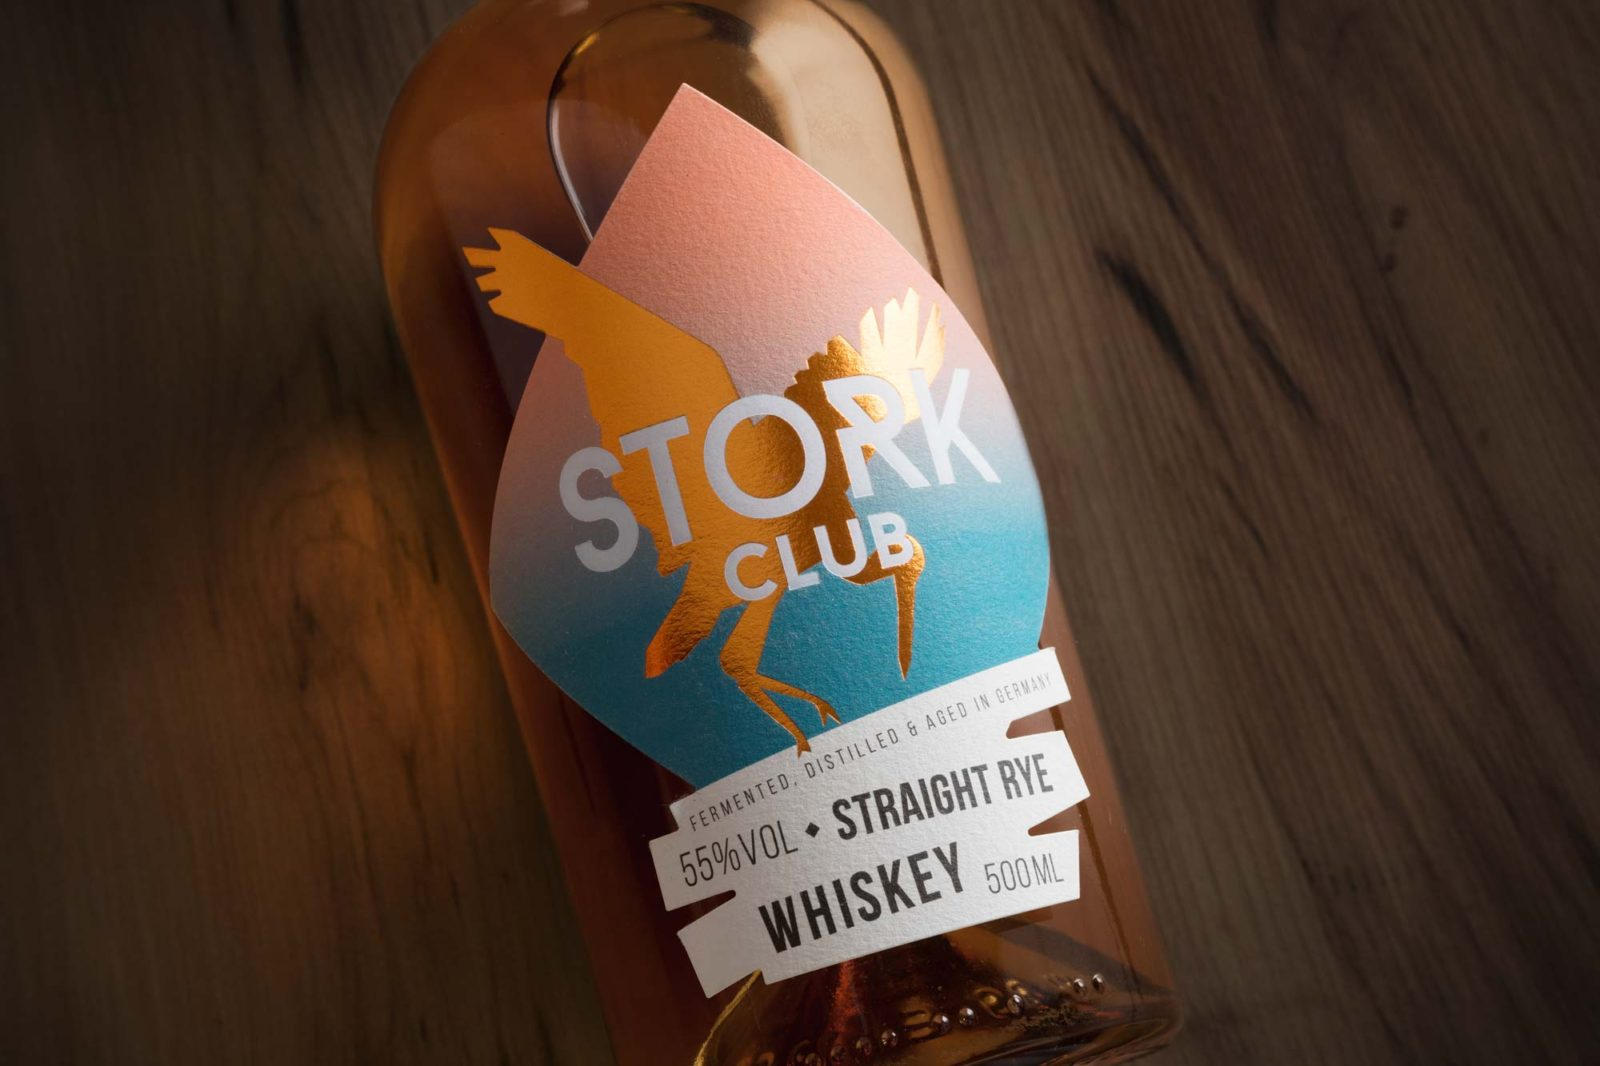 Editienne Grafikdesign - Kommunikationsdesign Berlin- Packaging Design- Spreewood Distillers- Stork Club Whisky 16